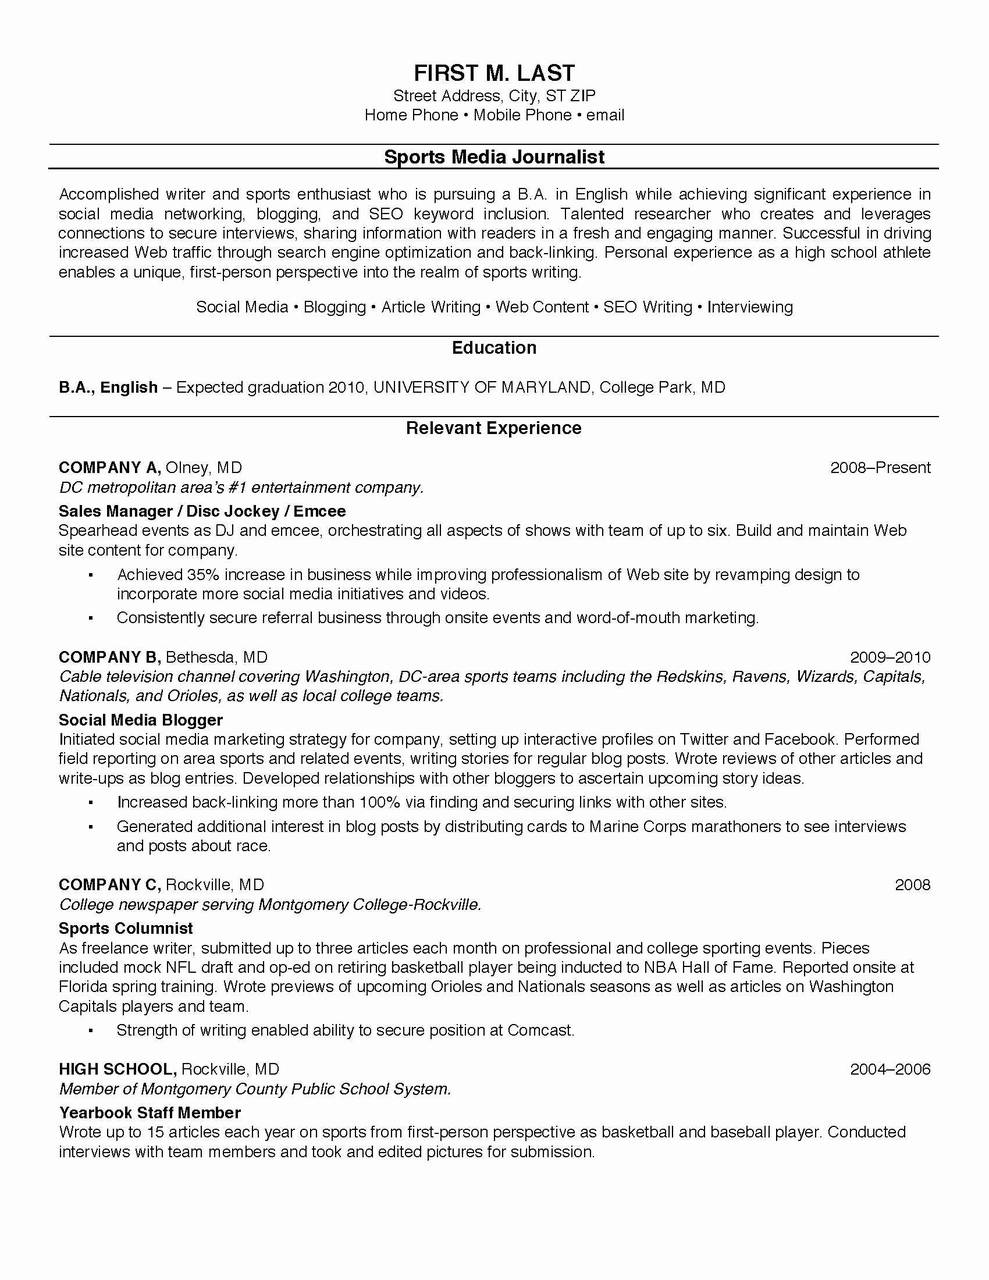 004 Essay Example What To Put On College Resume Inspirational Persuasive Should Education Free Argumentative Org Not For Everyone Tuition Community Attend Impressive Be Full